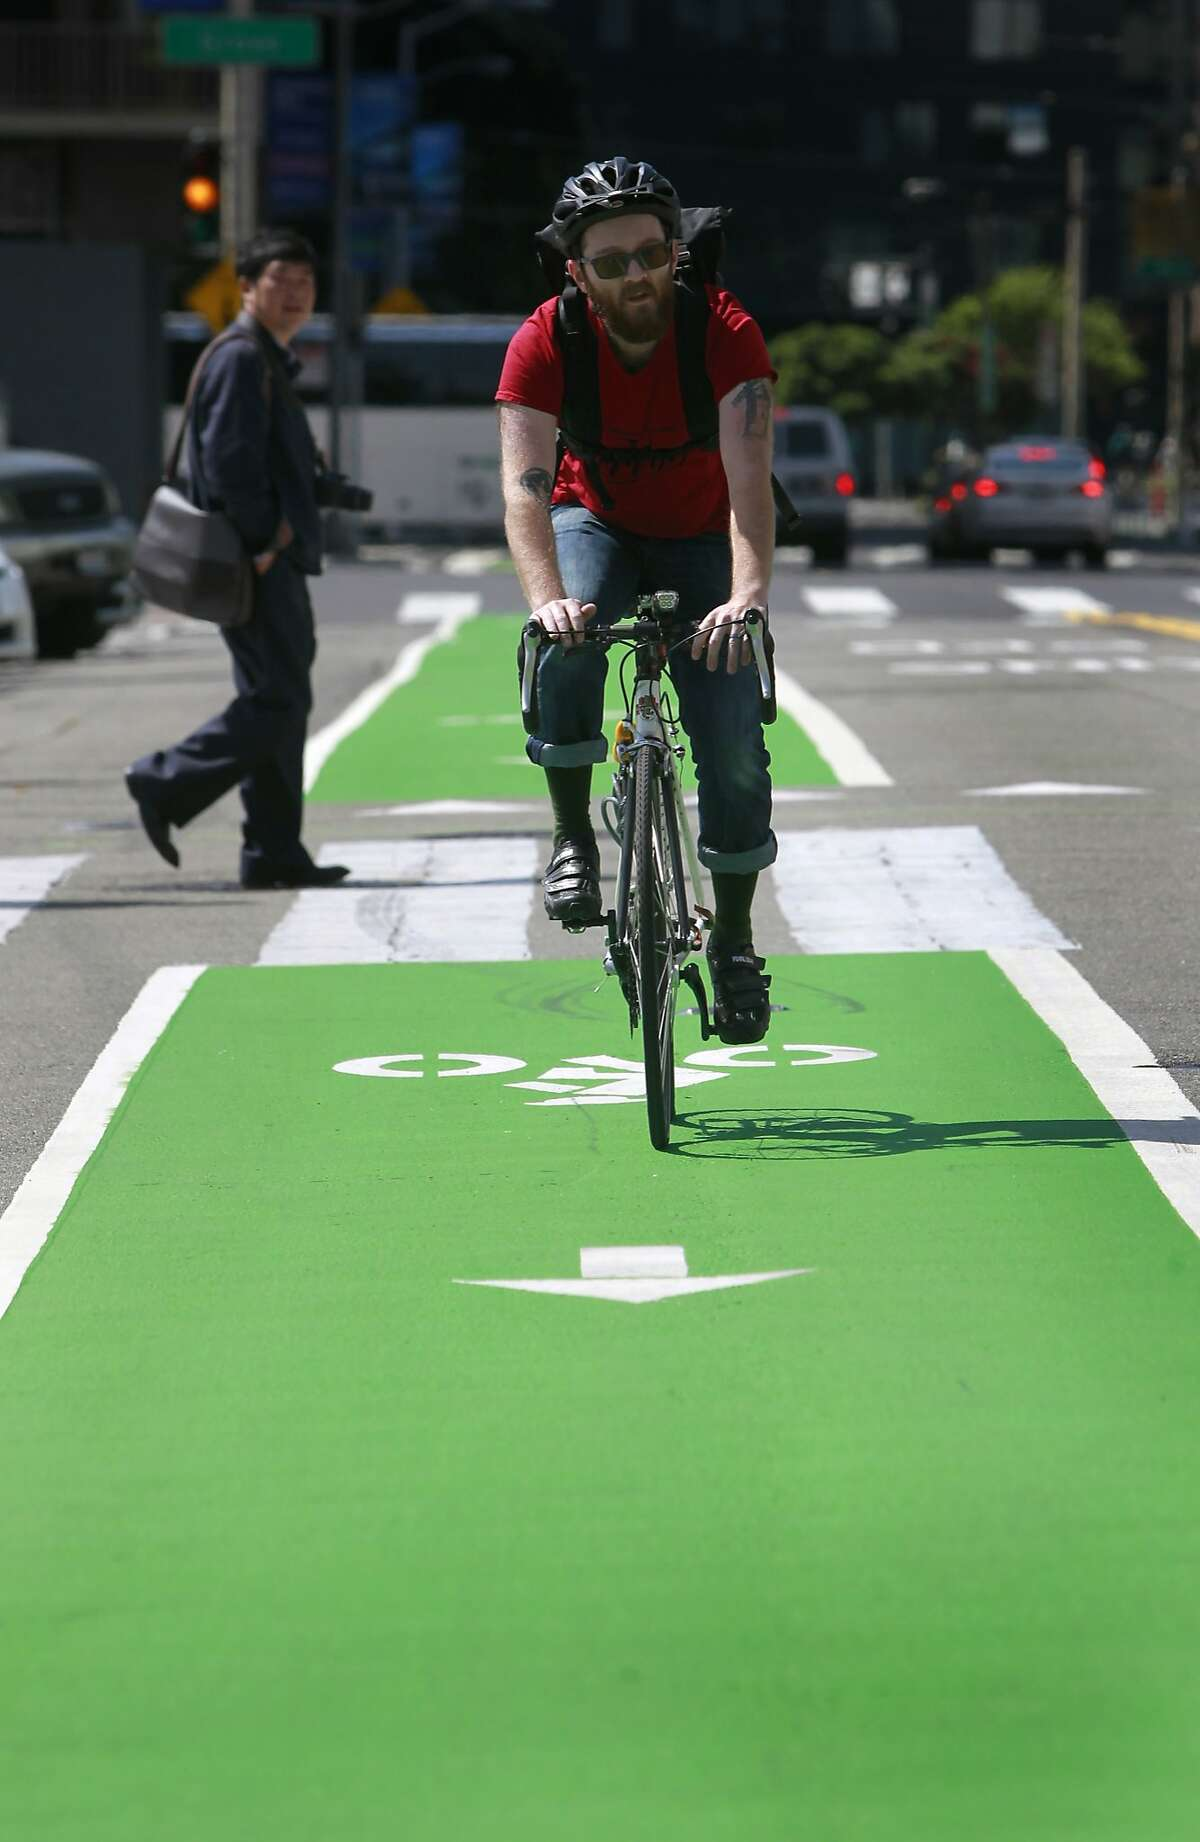 Jared Shoupe rides his bicycle on the new Polk Street bicycle lane past City Hall in San Francisco, Calif. on Saturday, May 24, 2014.